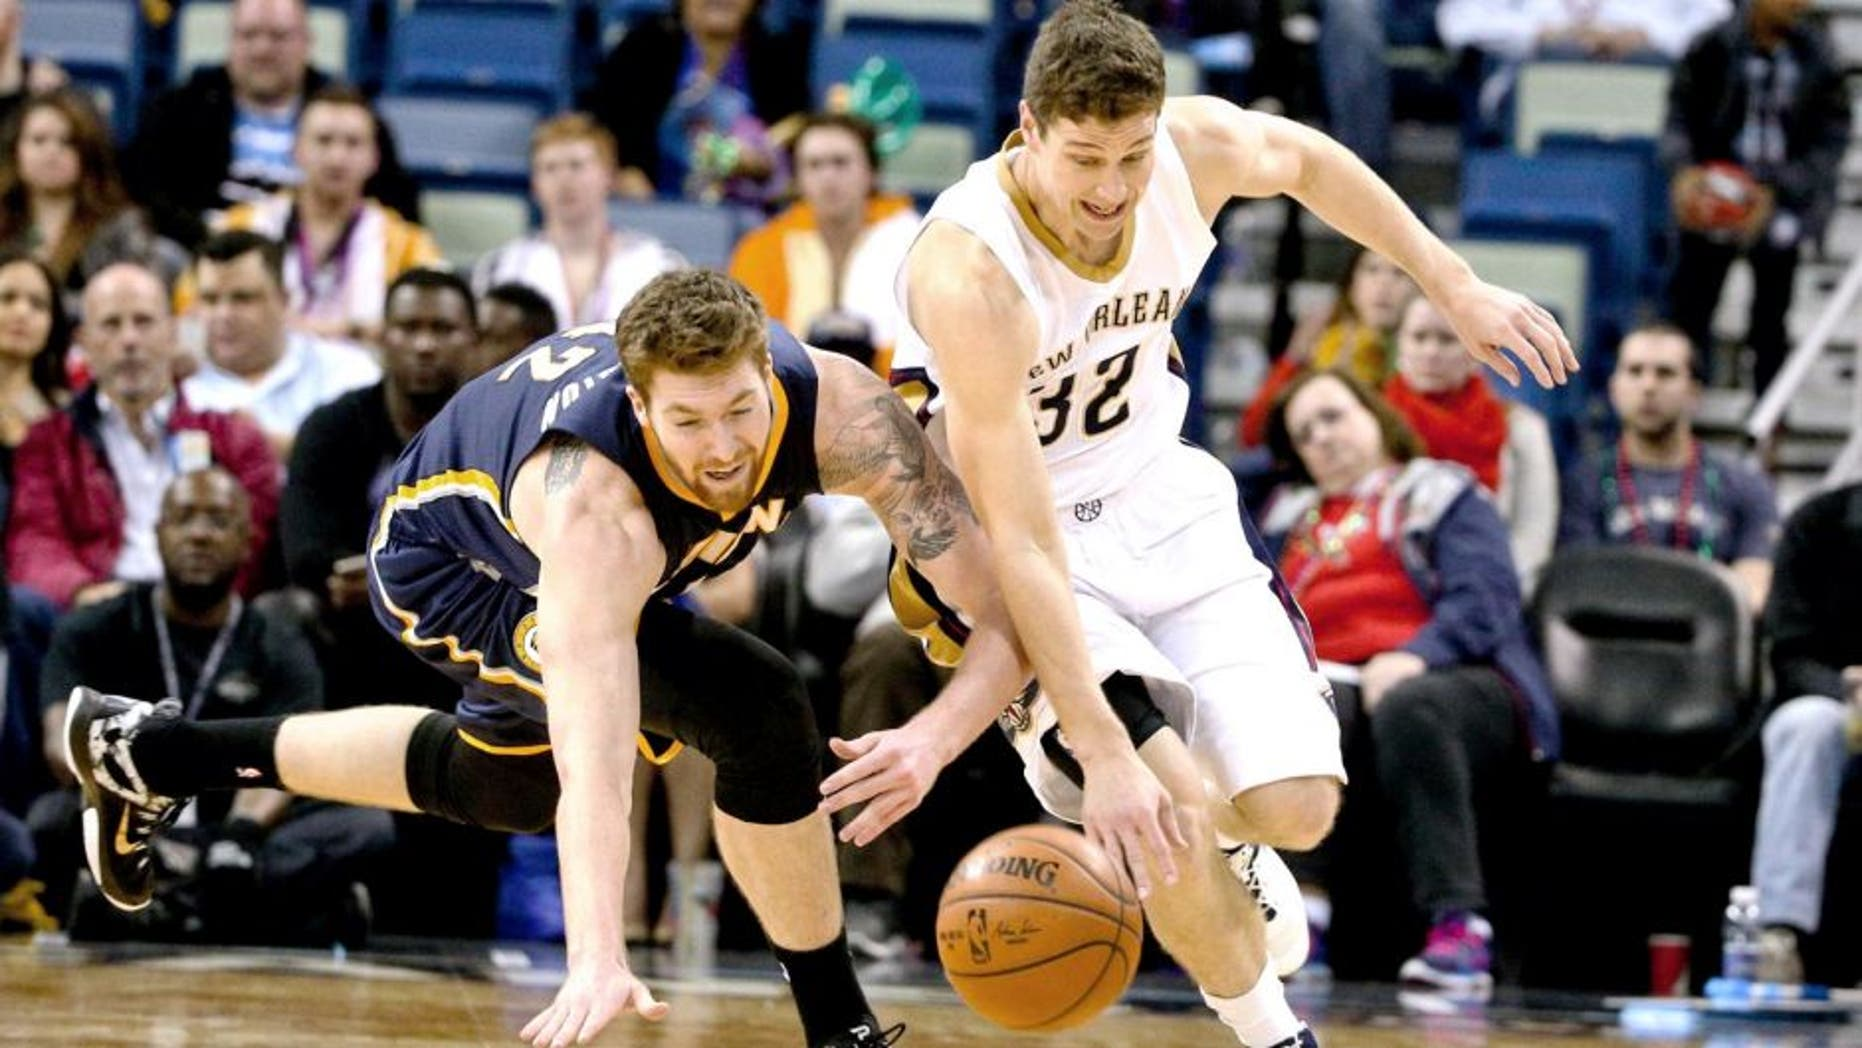 Feb 11, 2015; New Orleans, LA, USA; New Orleans Pelicans guard Jimmer Fredette (32) and Indiana Pacers forward Shayne Whittington (42) scramble for a loose ball during the second half of a game at the Smoothie King Center. The Pacers defeated the Pelicans 106-93.Mandatory Credit: Derick E. Hingle-USA TODAY Sports